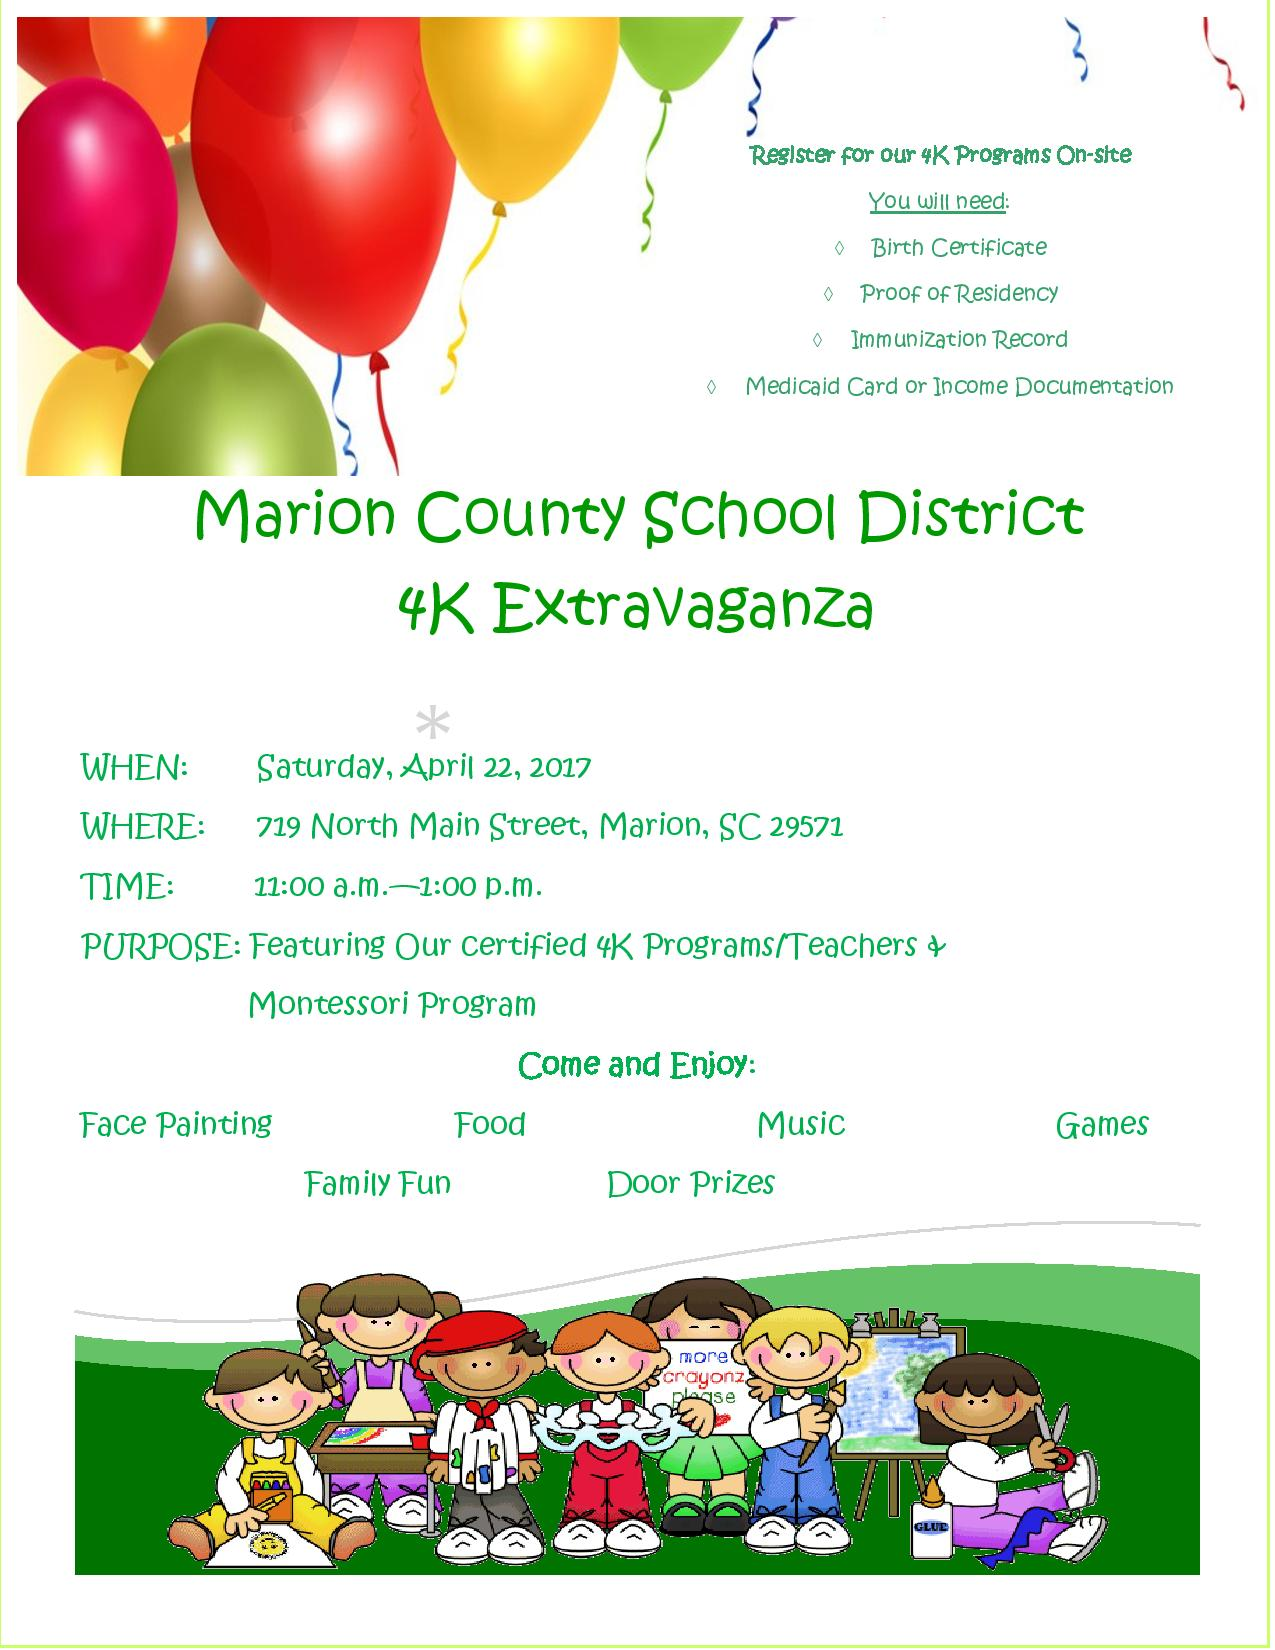 Flyer announcing 4K Extravaganza on April 22 from 11:00 to 1:00